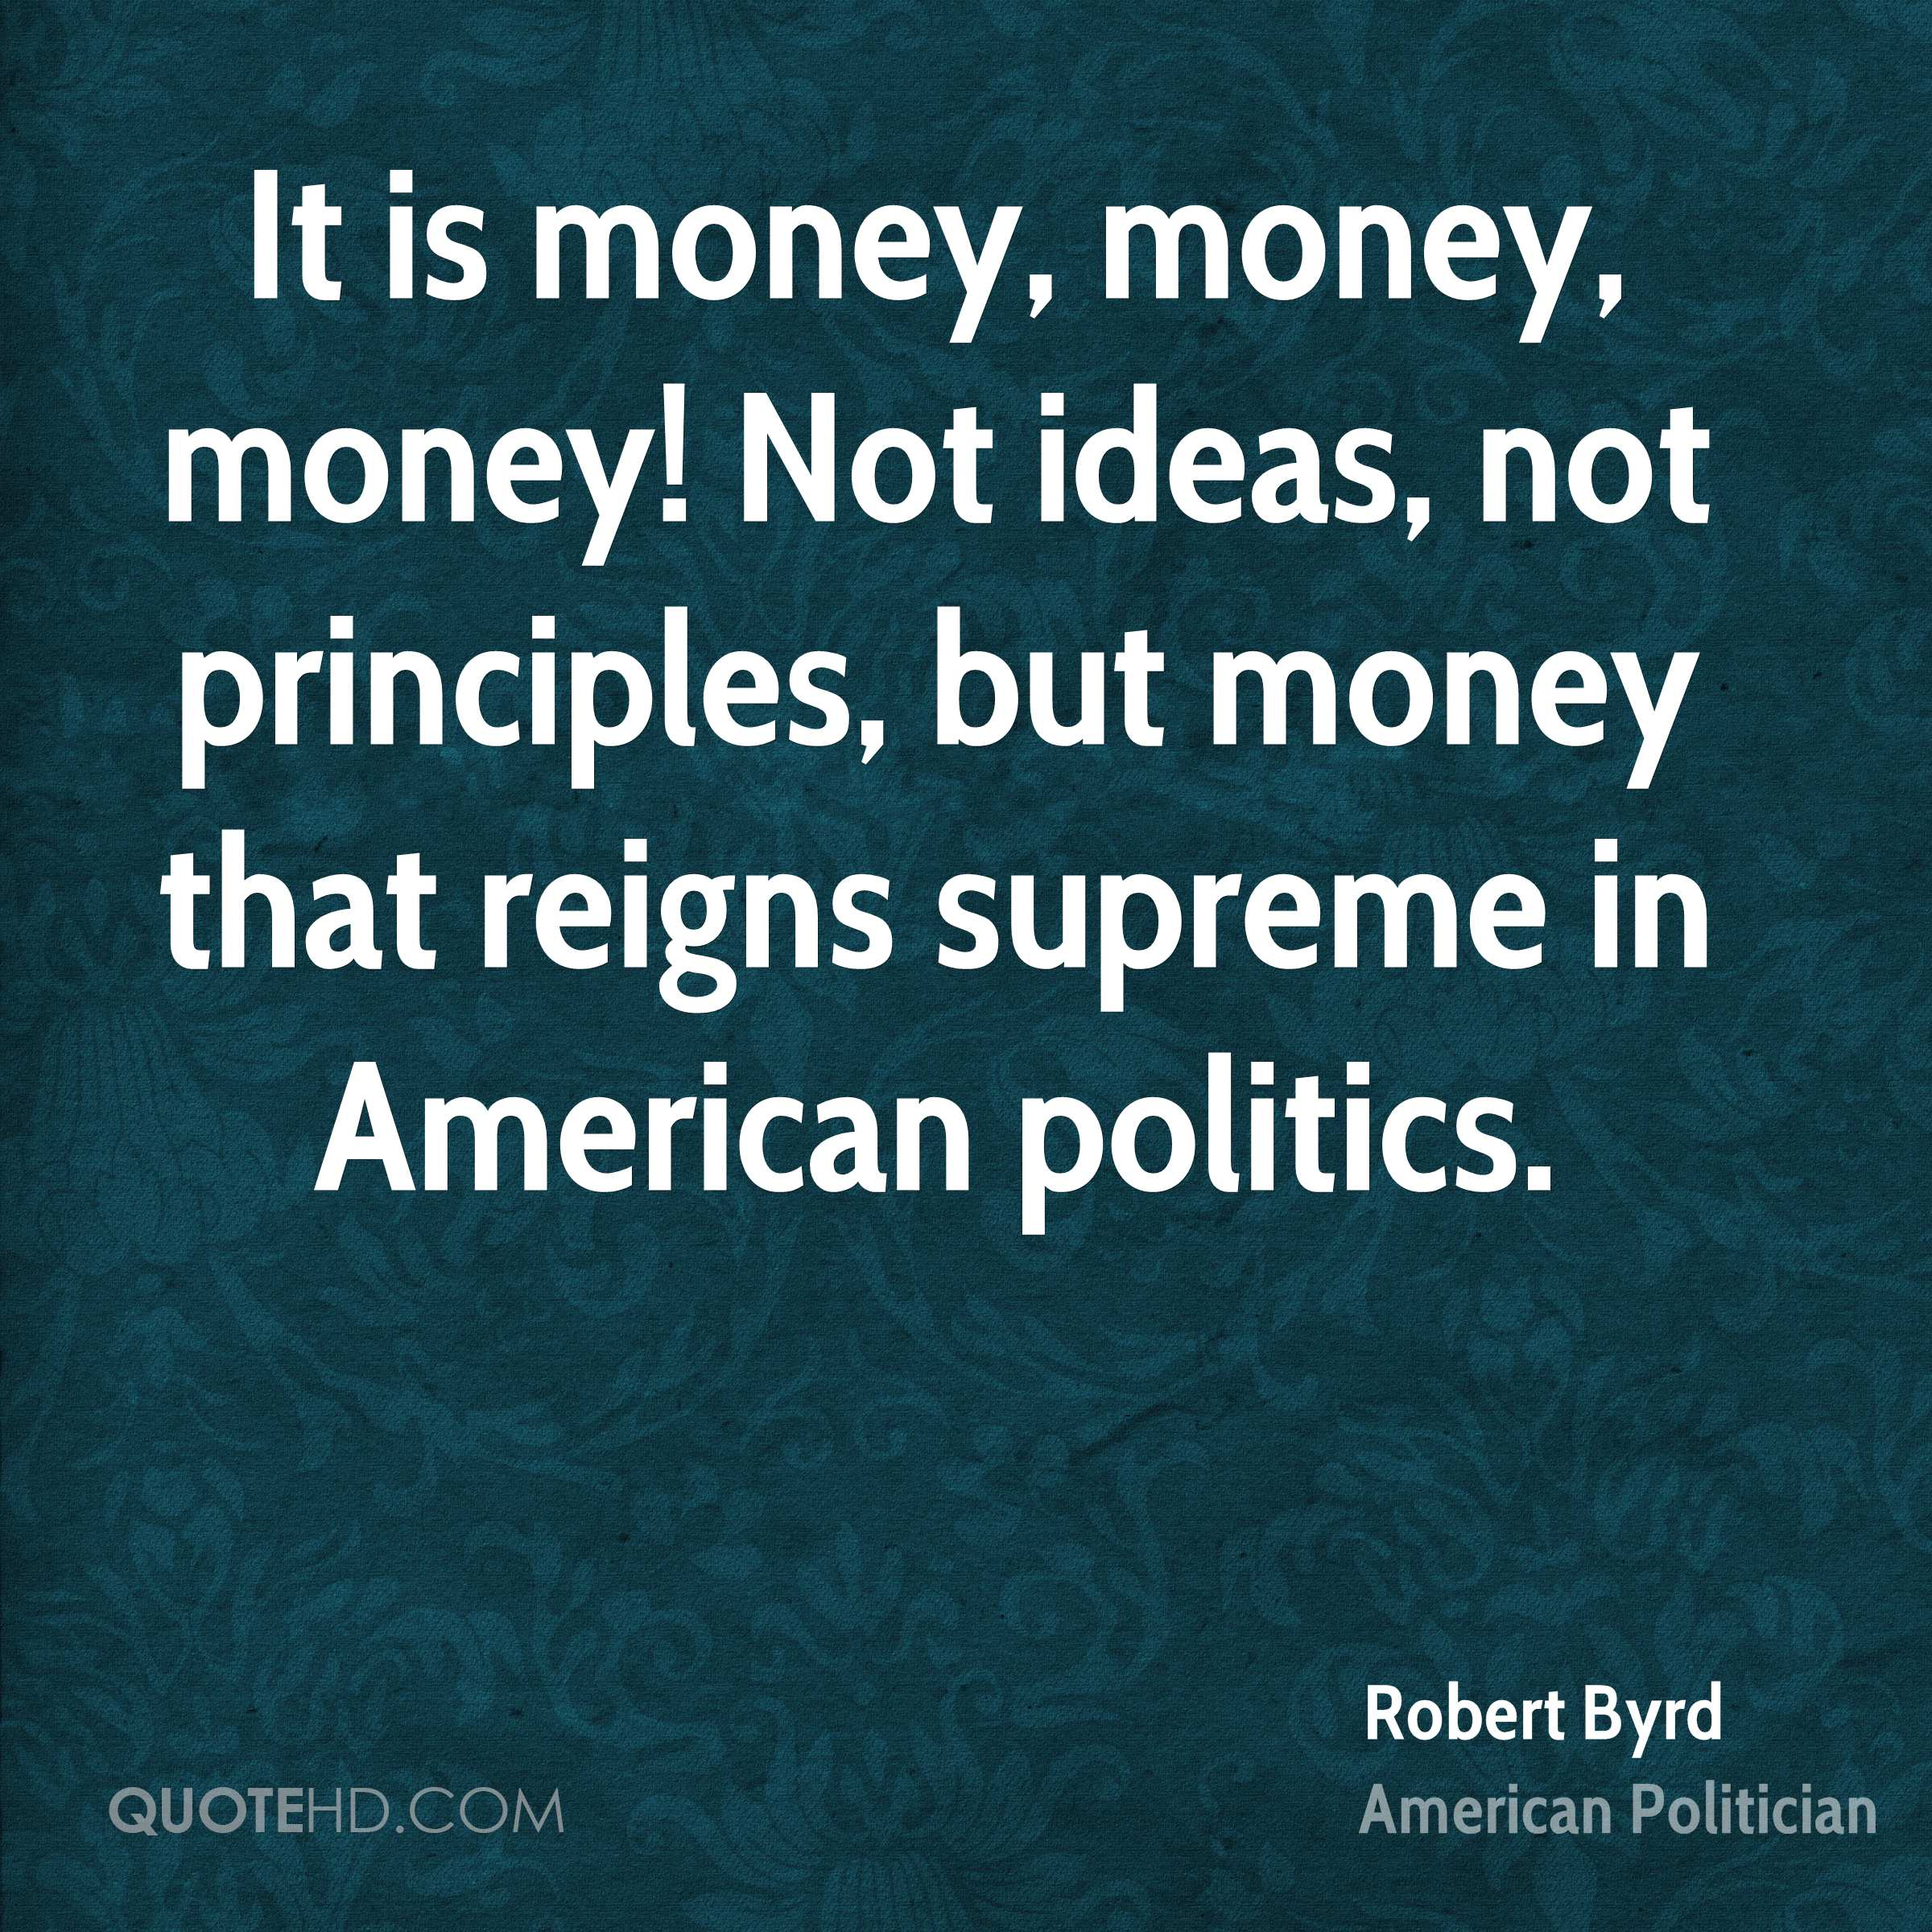 It is money, money, money! Not ideas, not principles, but money that reigns supreme in American politics.